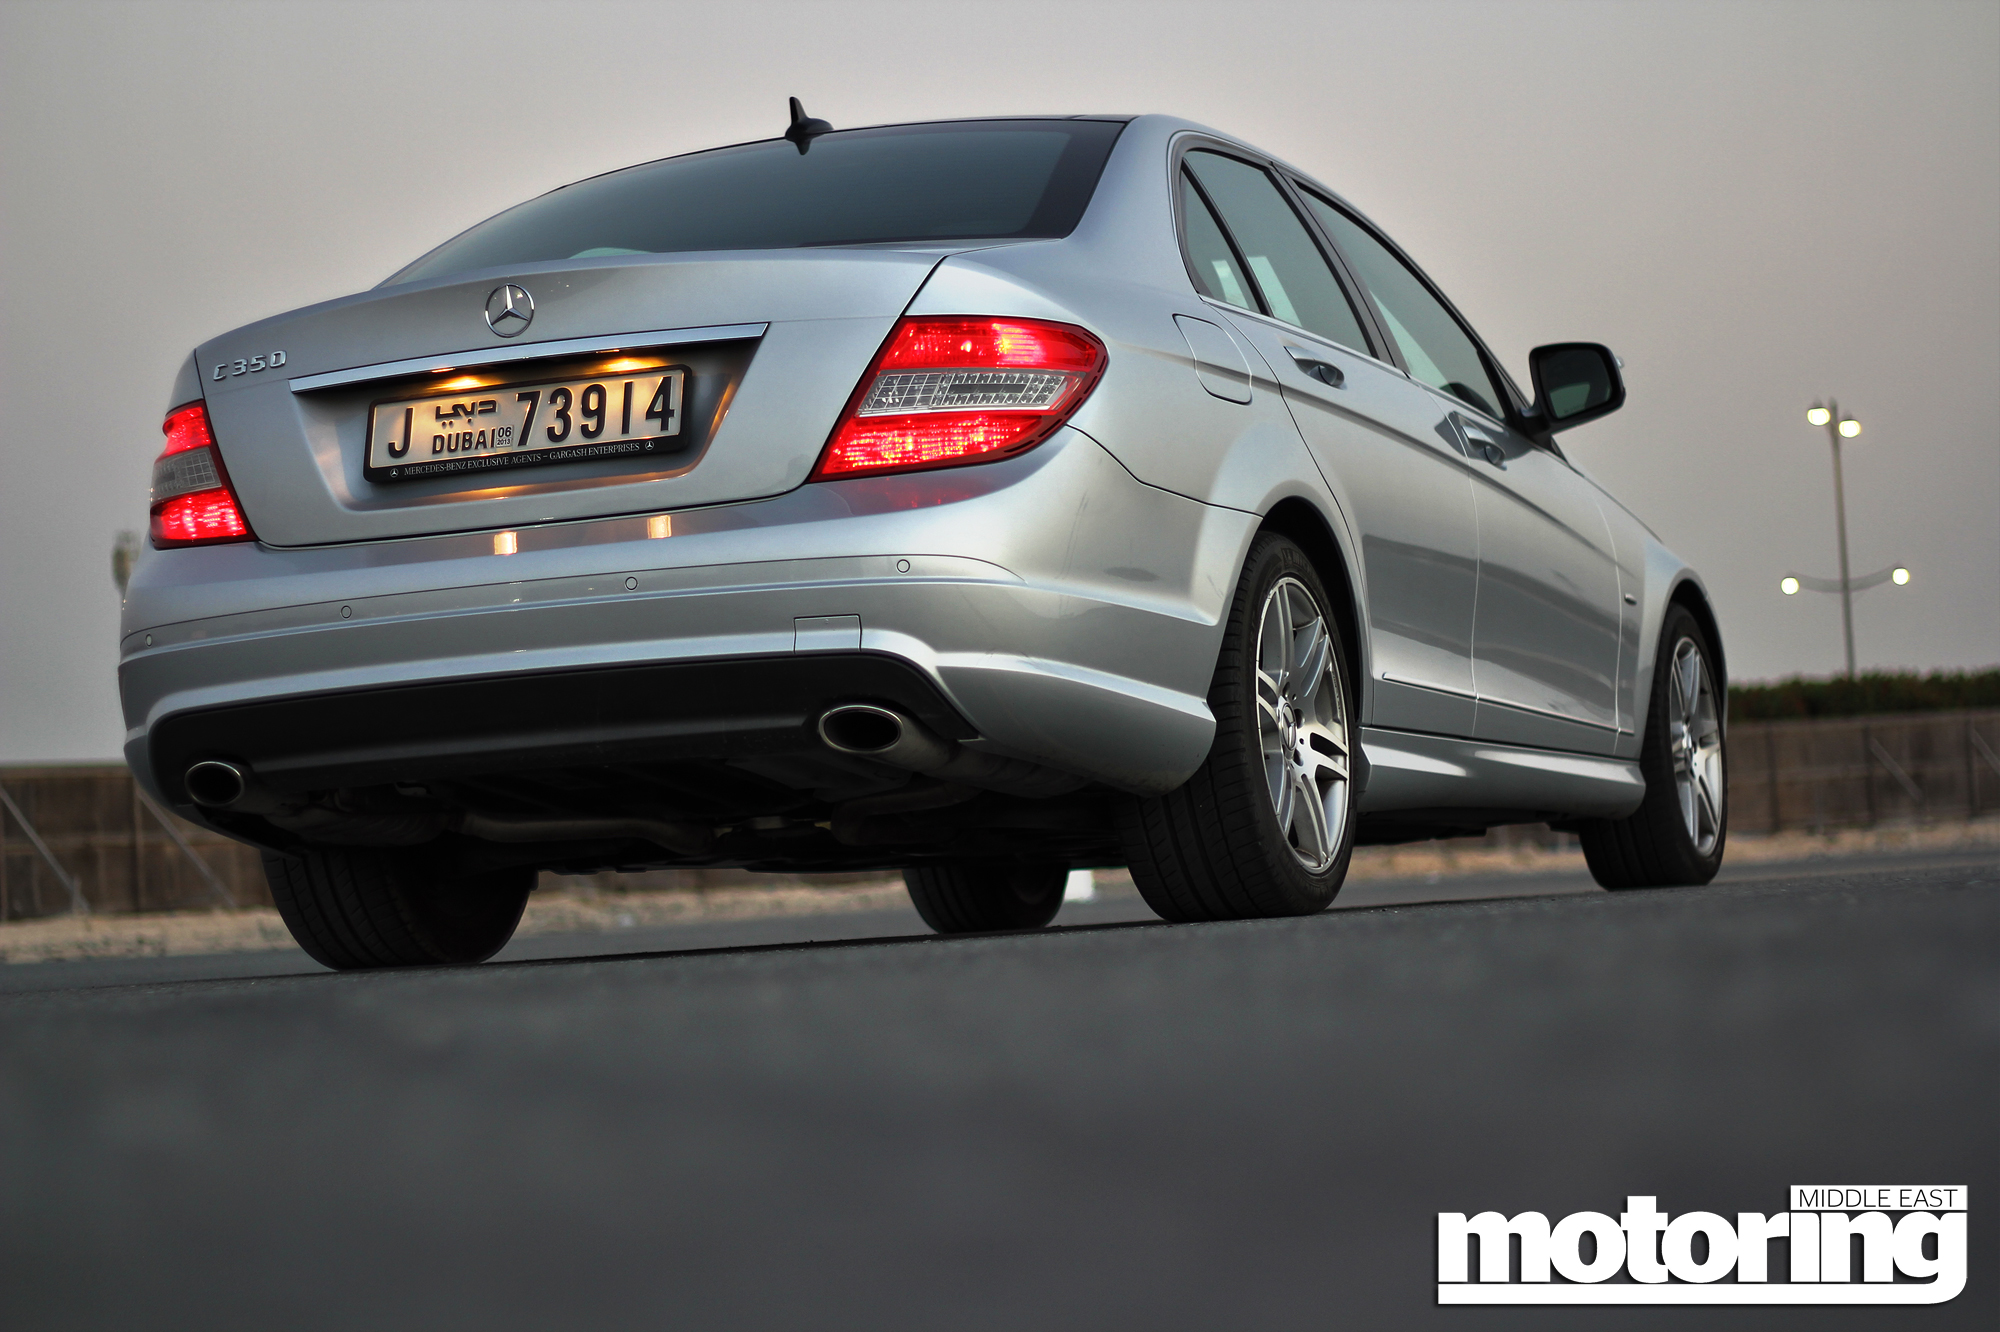 Used Buying Guide Mercedes C-Class (W204) 2008-2014Motoring